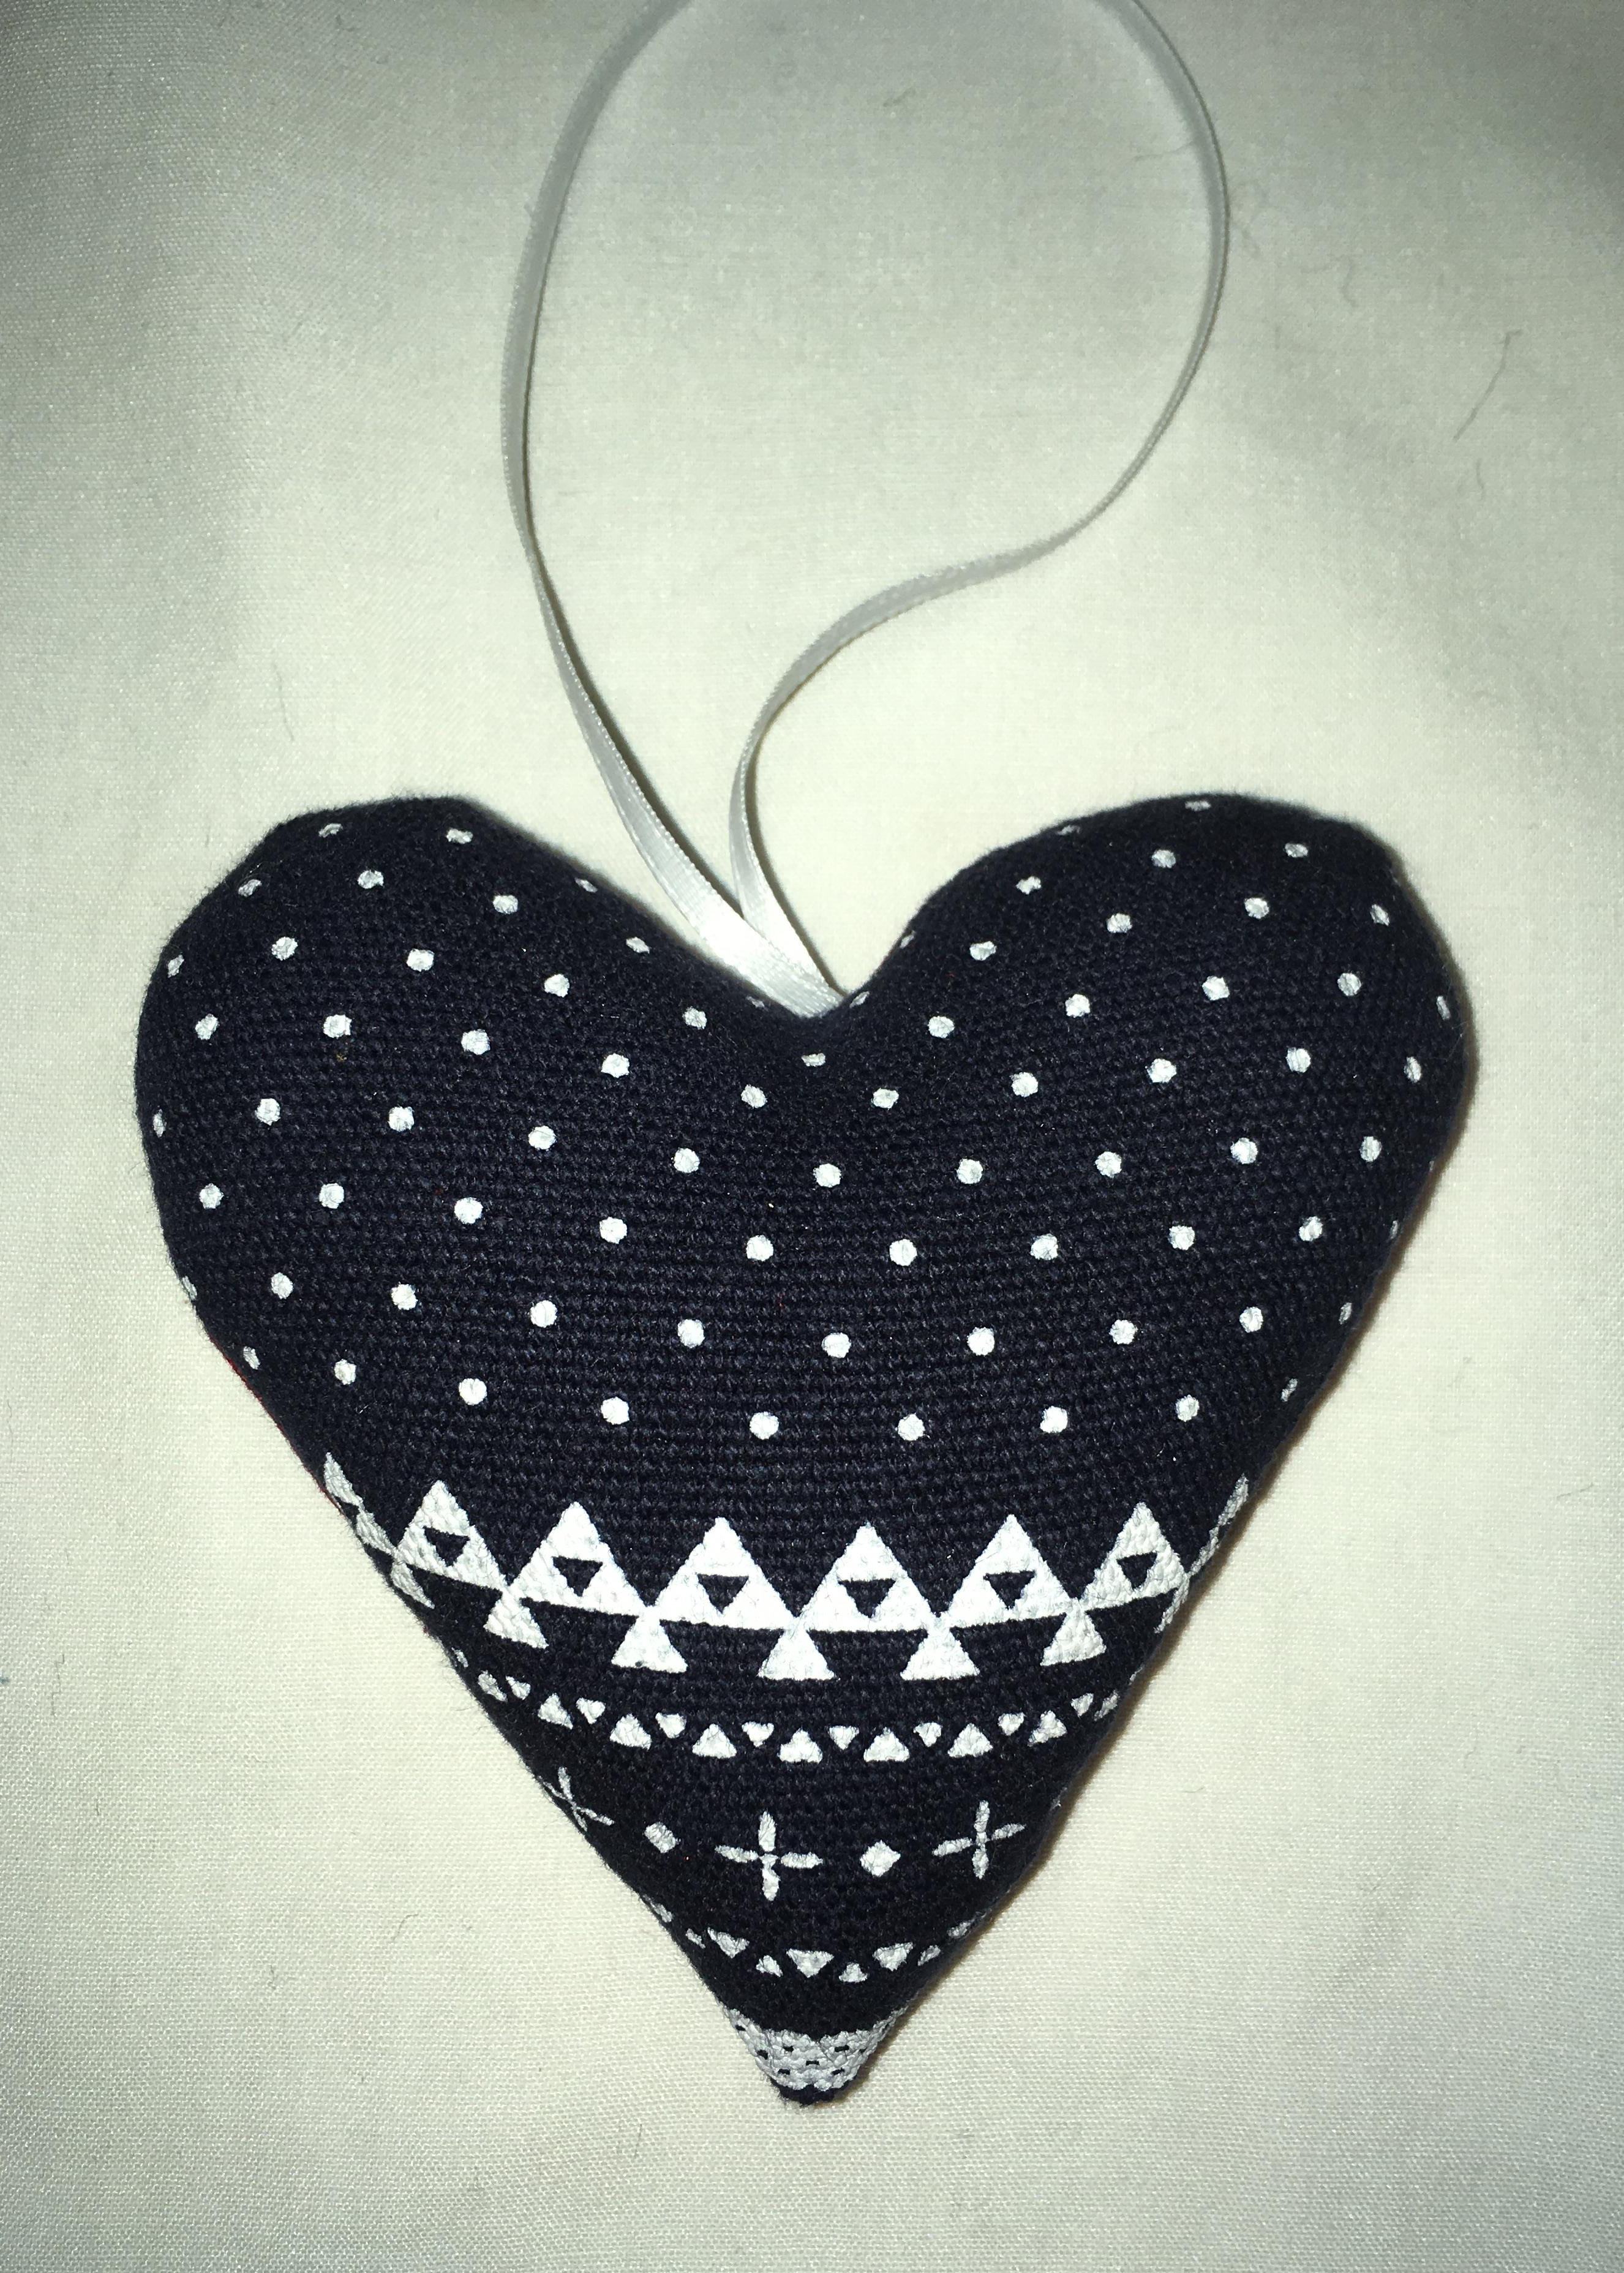 Heart Ornament 005